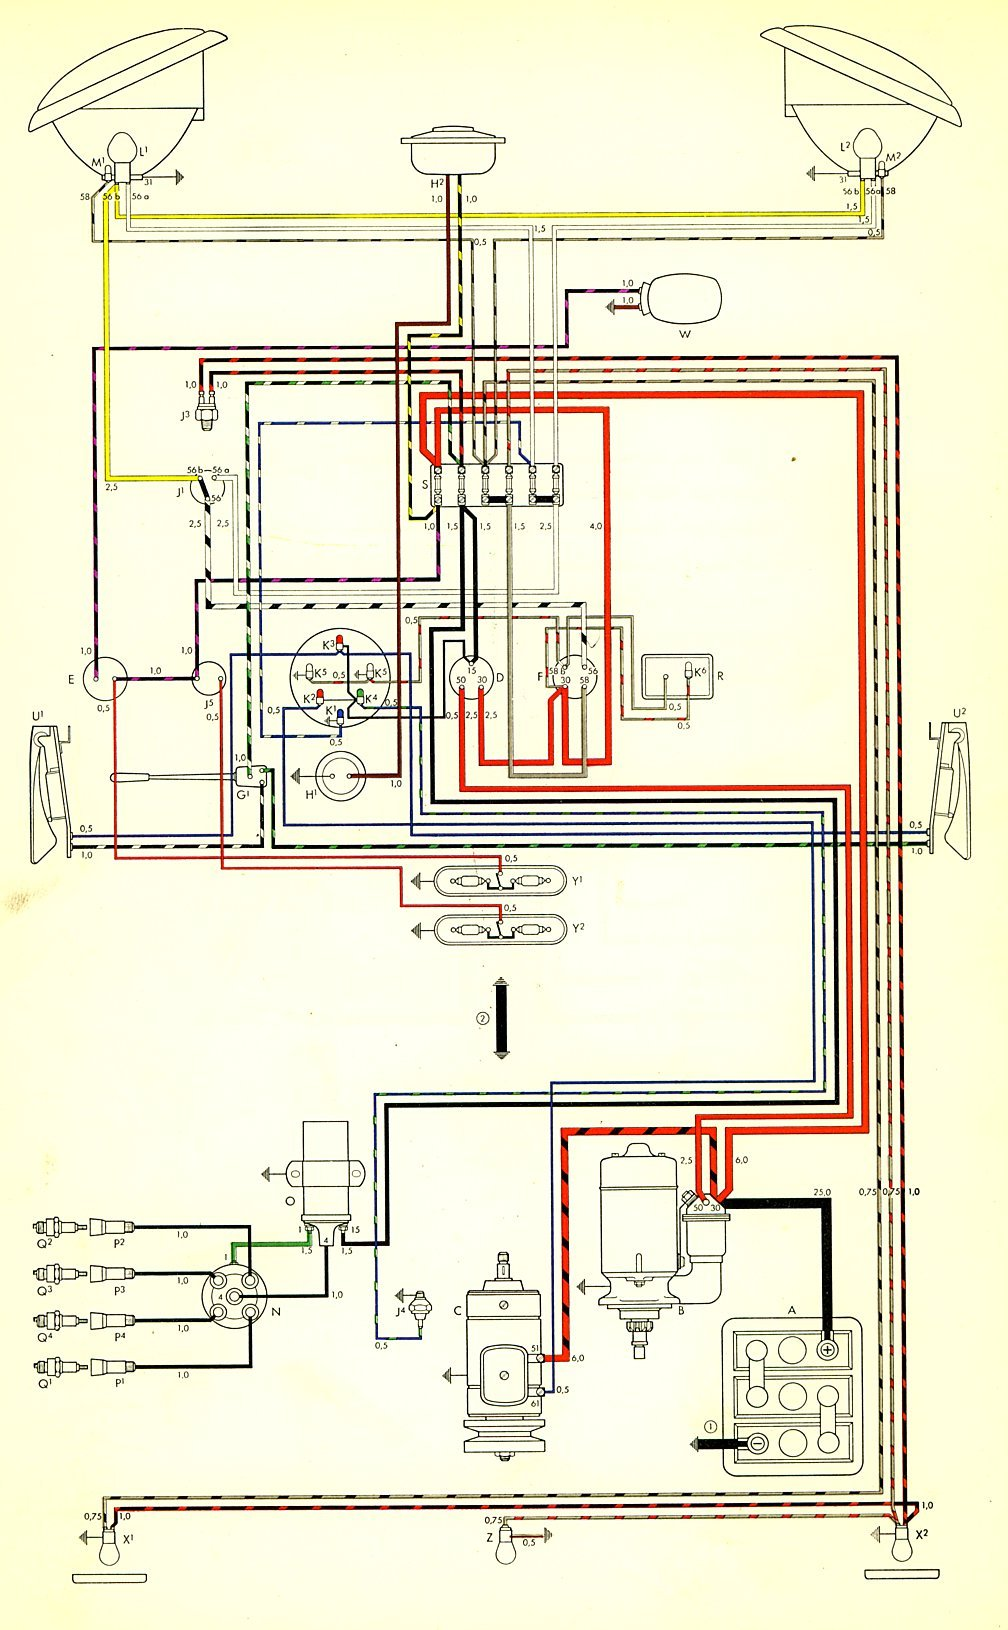 1963 vw wiring diagram 1961 vw wiring diagram 1961 wiring diagrams online 1965 bus wiring diagram